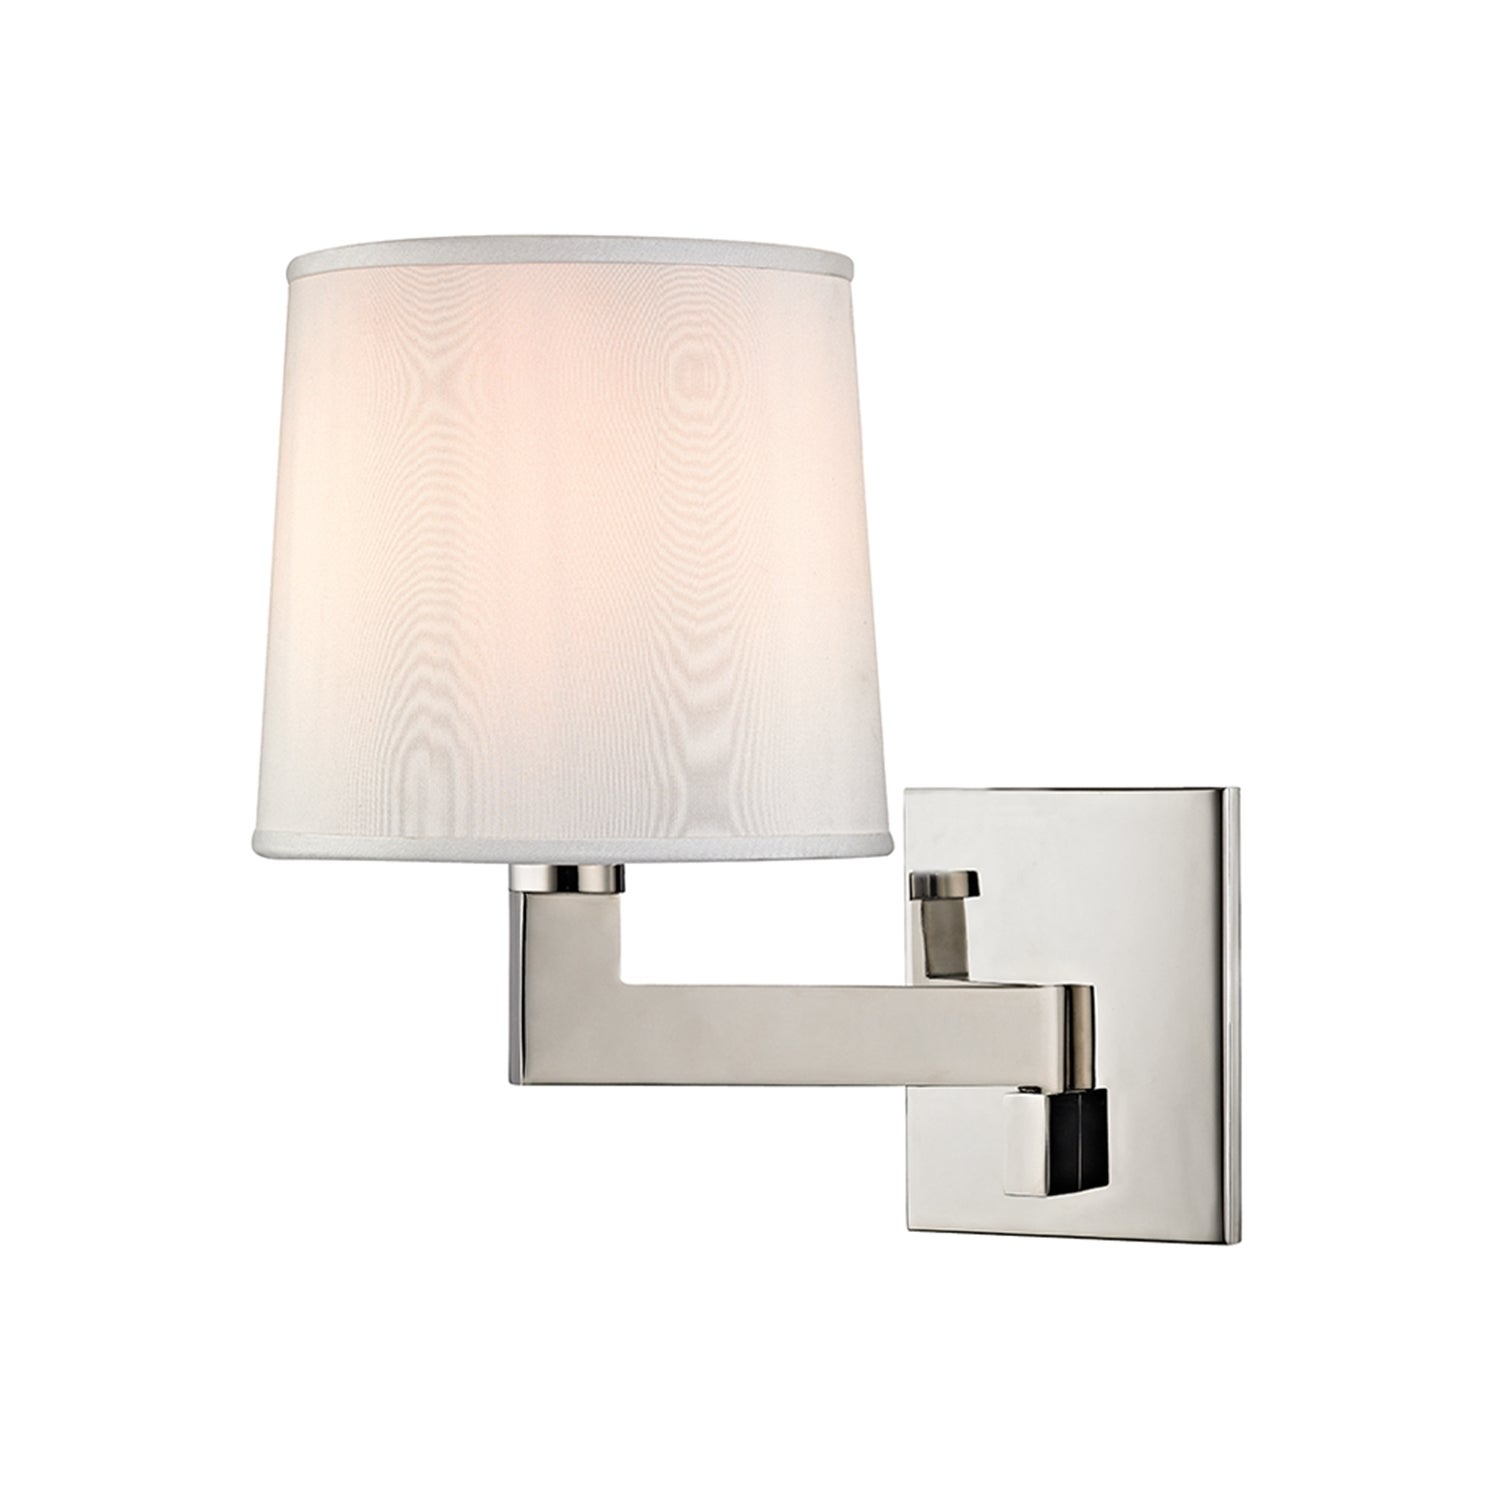 outlet store b6183 8cfa4 Hudson Valley Fairport 1 Light Small Wall Sconce